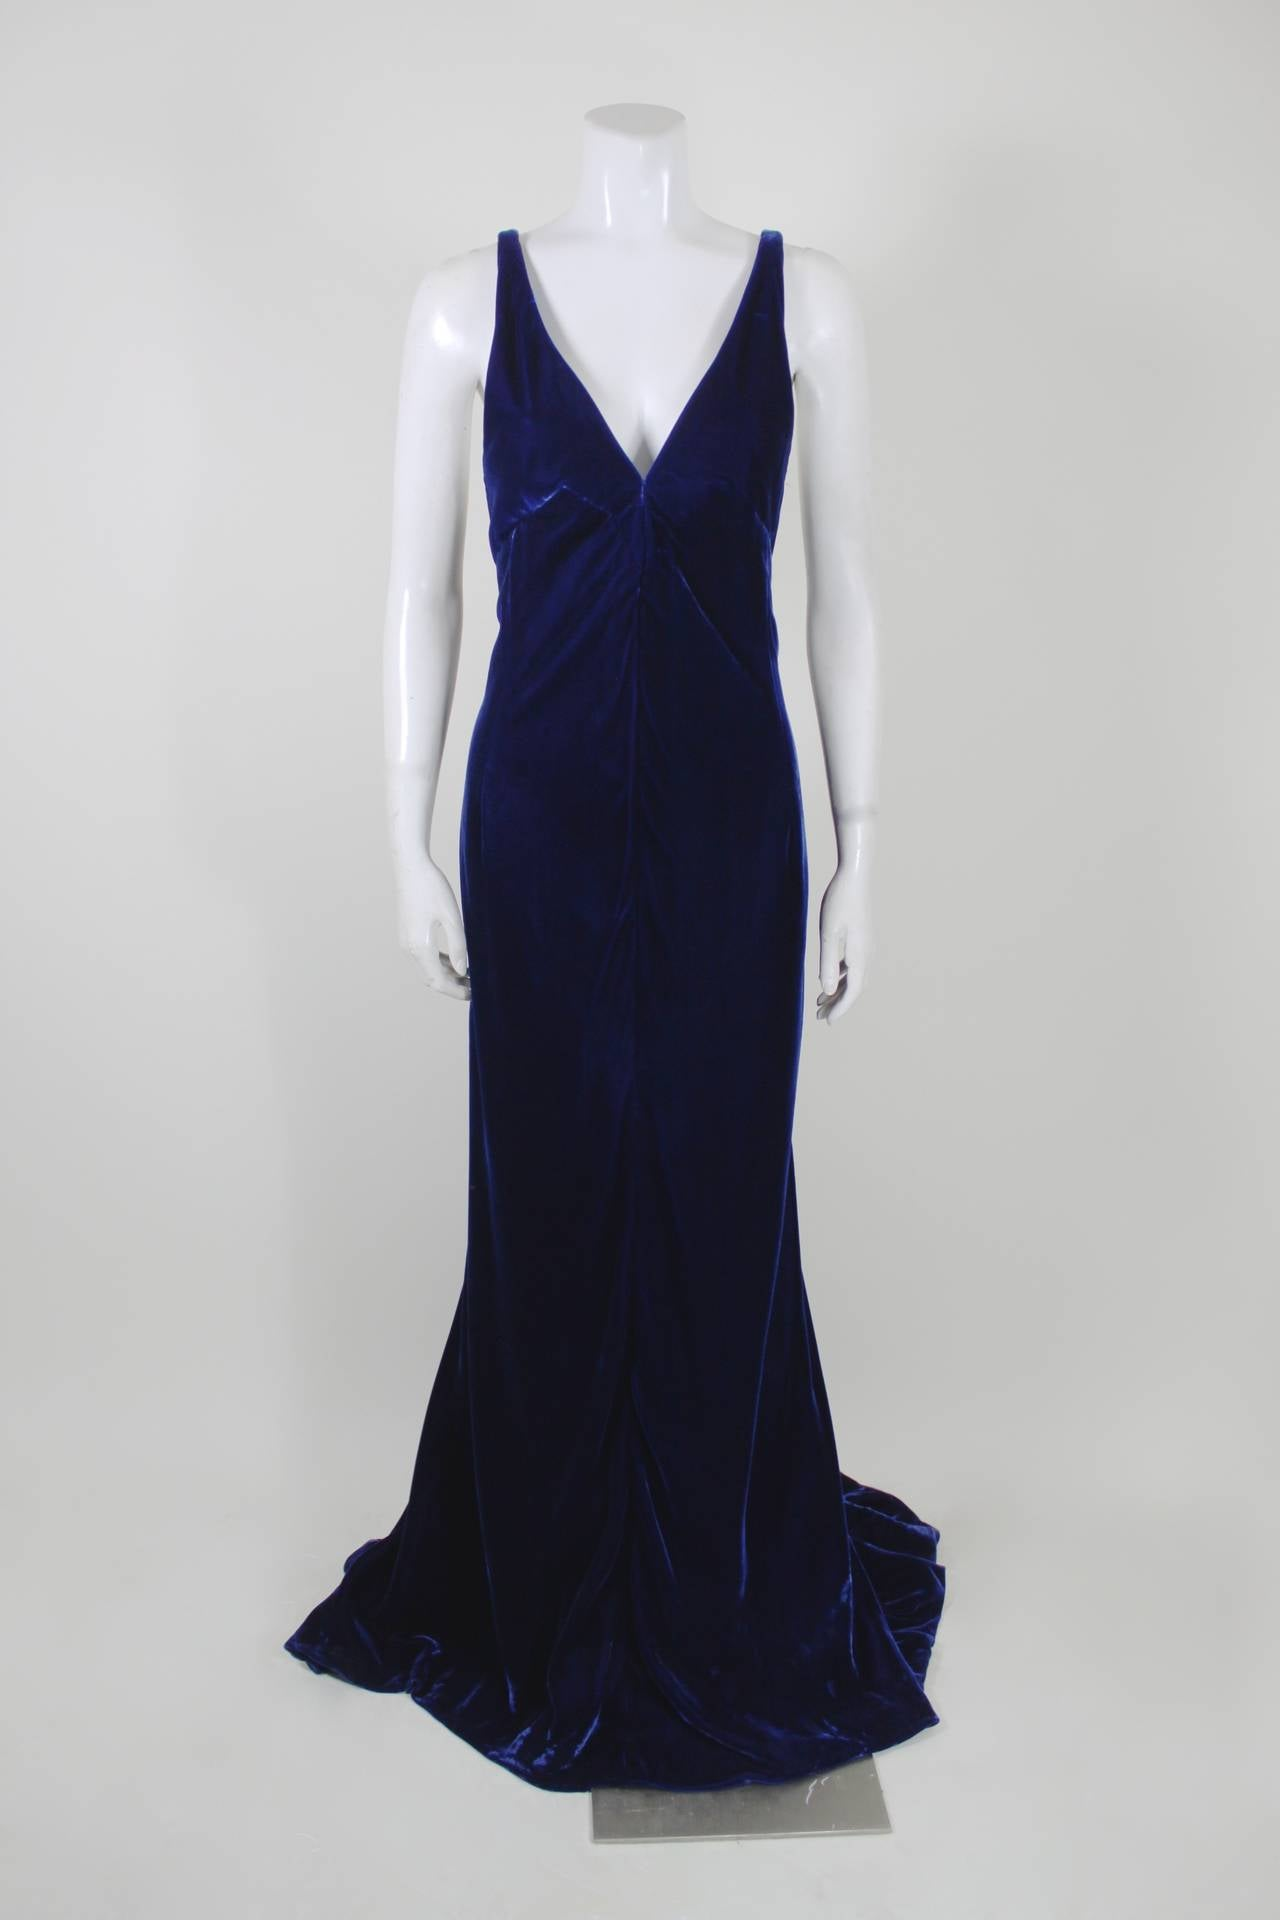 Jacqueline De Ribes Stunning Midnight Blue Velvet Evening Gown In Excellent Condition For Sale In Los Angeles, CA